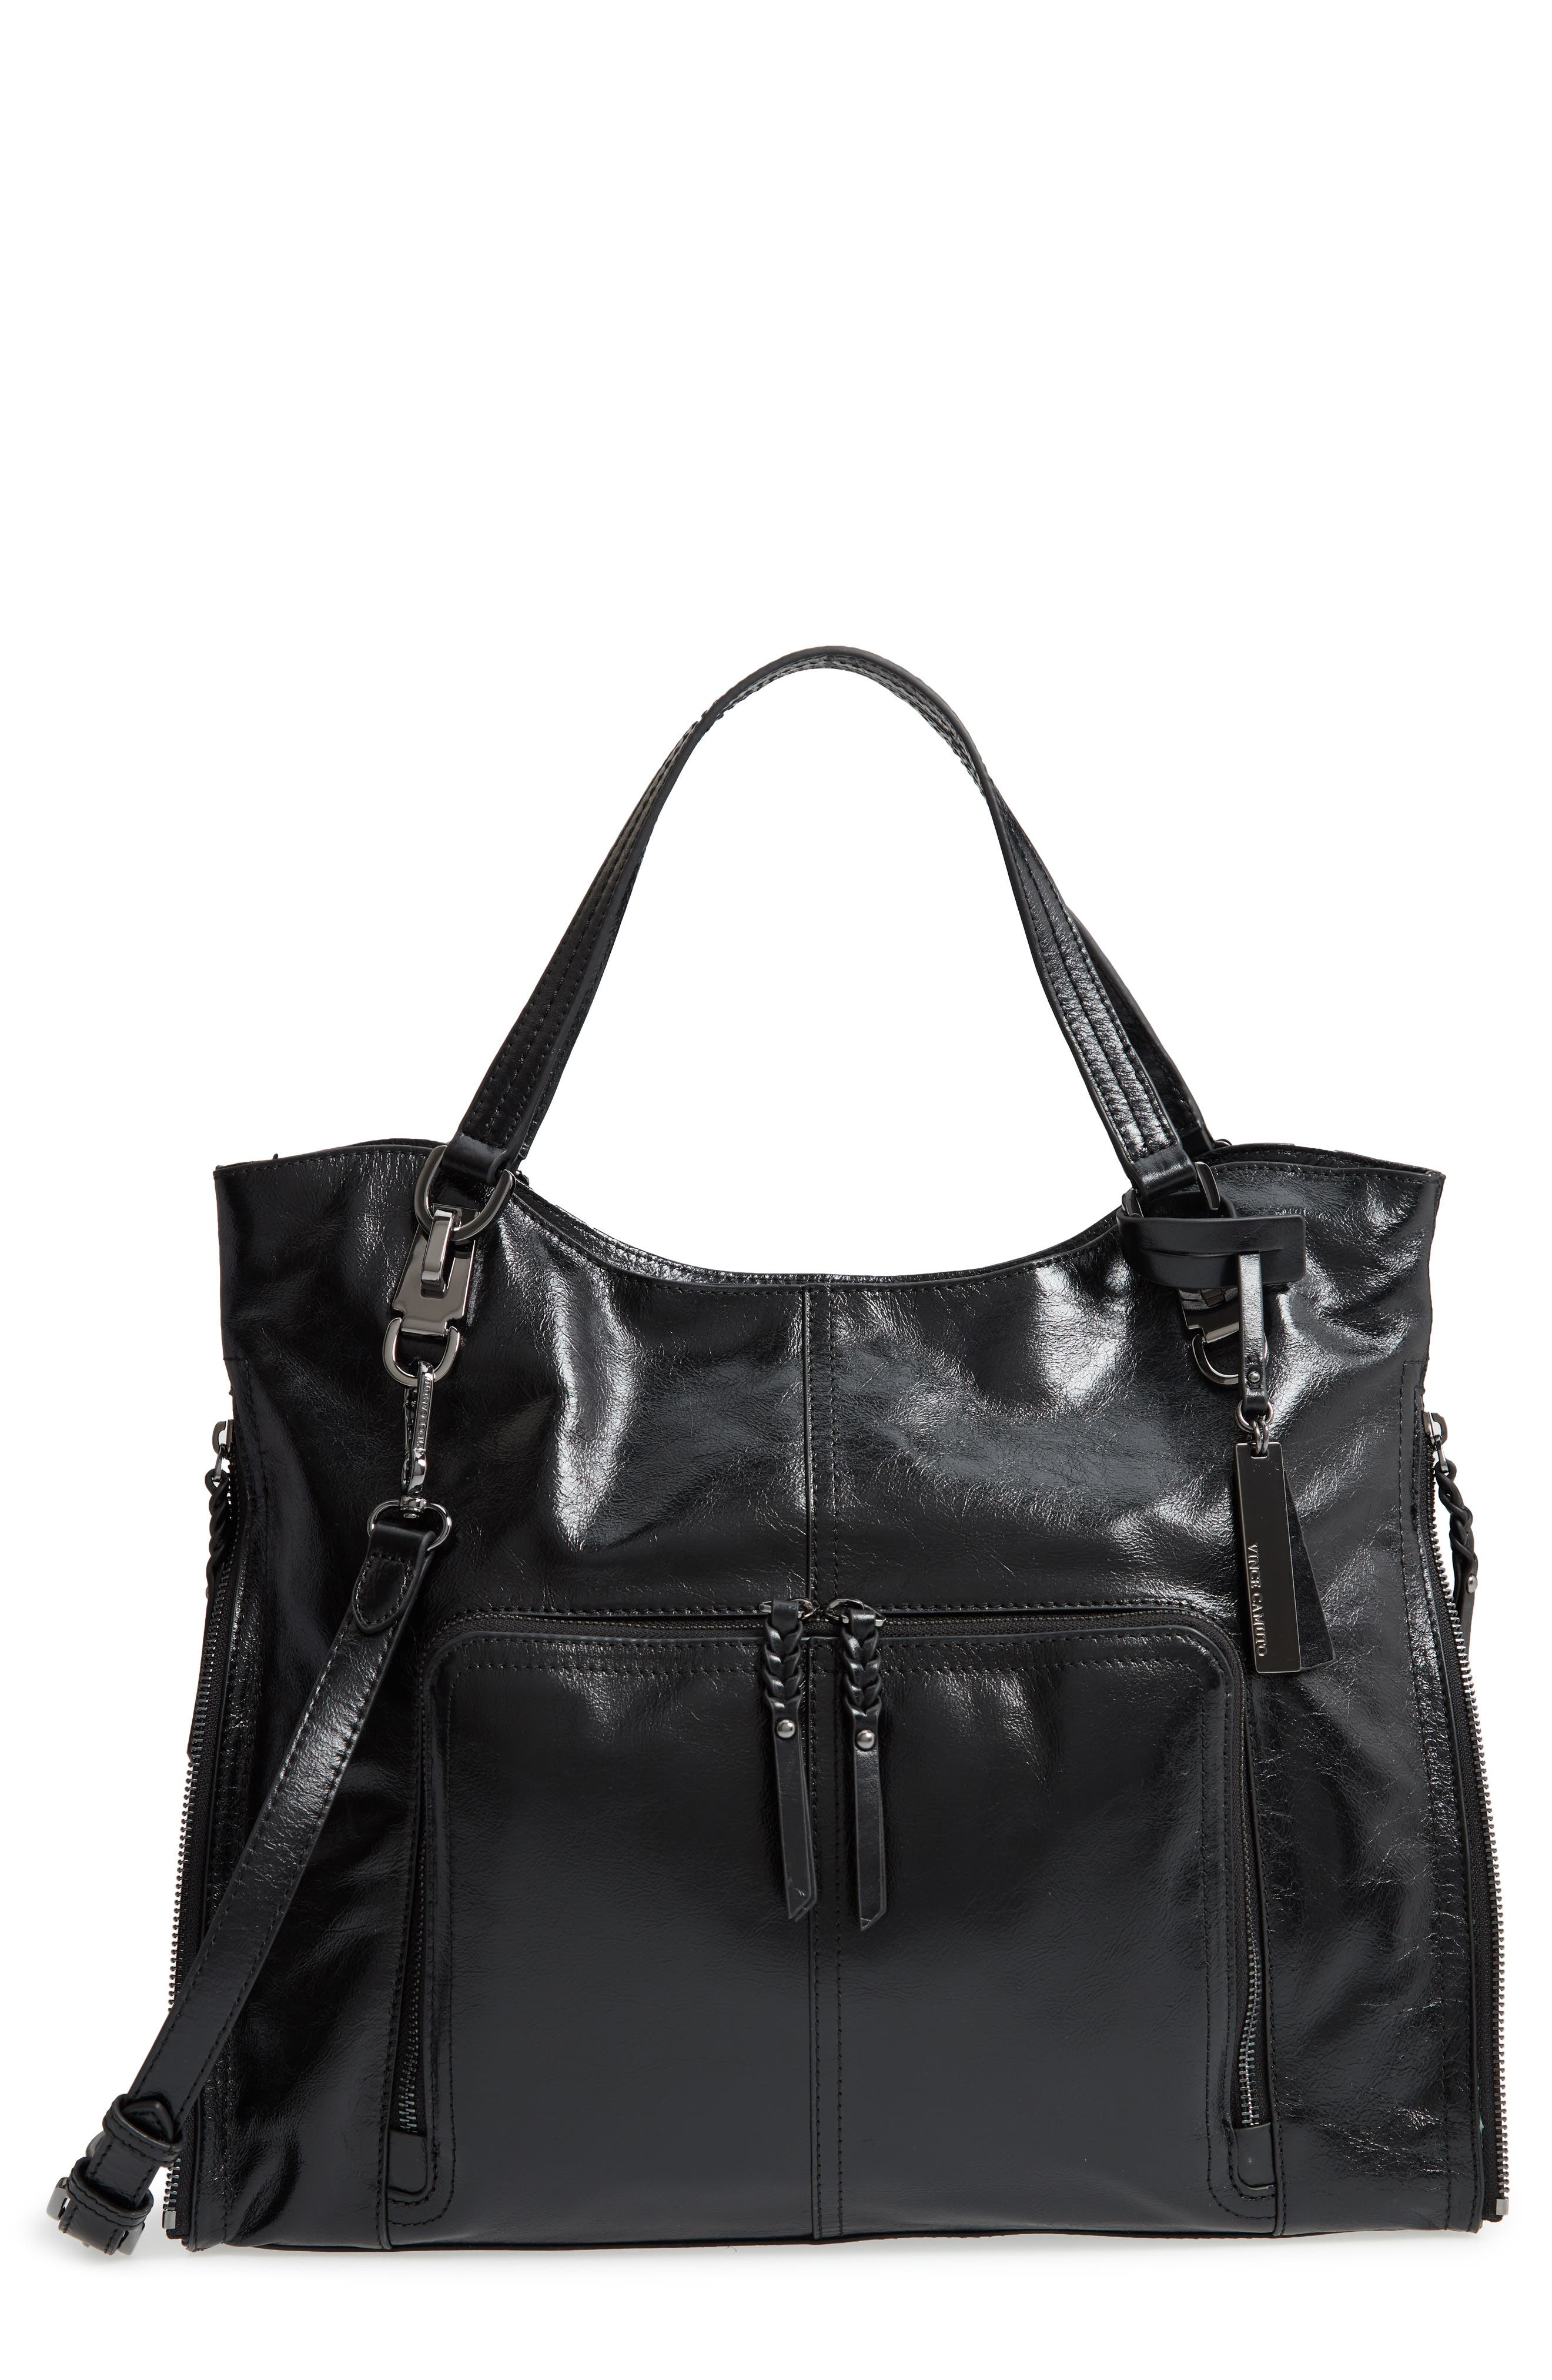 VINCE CAMUTO Narra Leather Tote, Main, color, 002